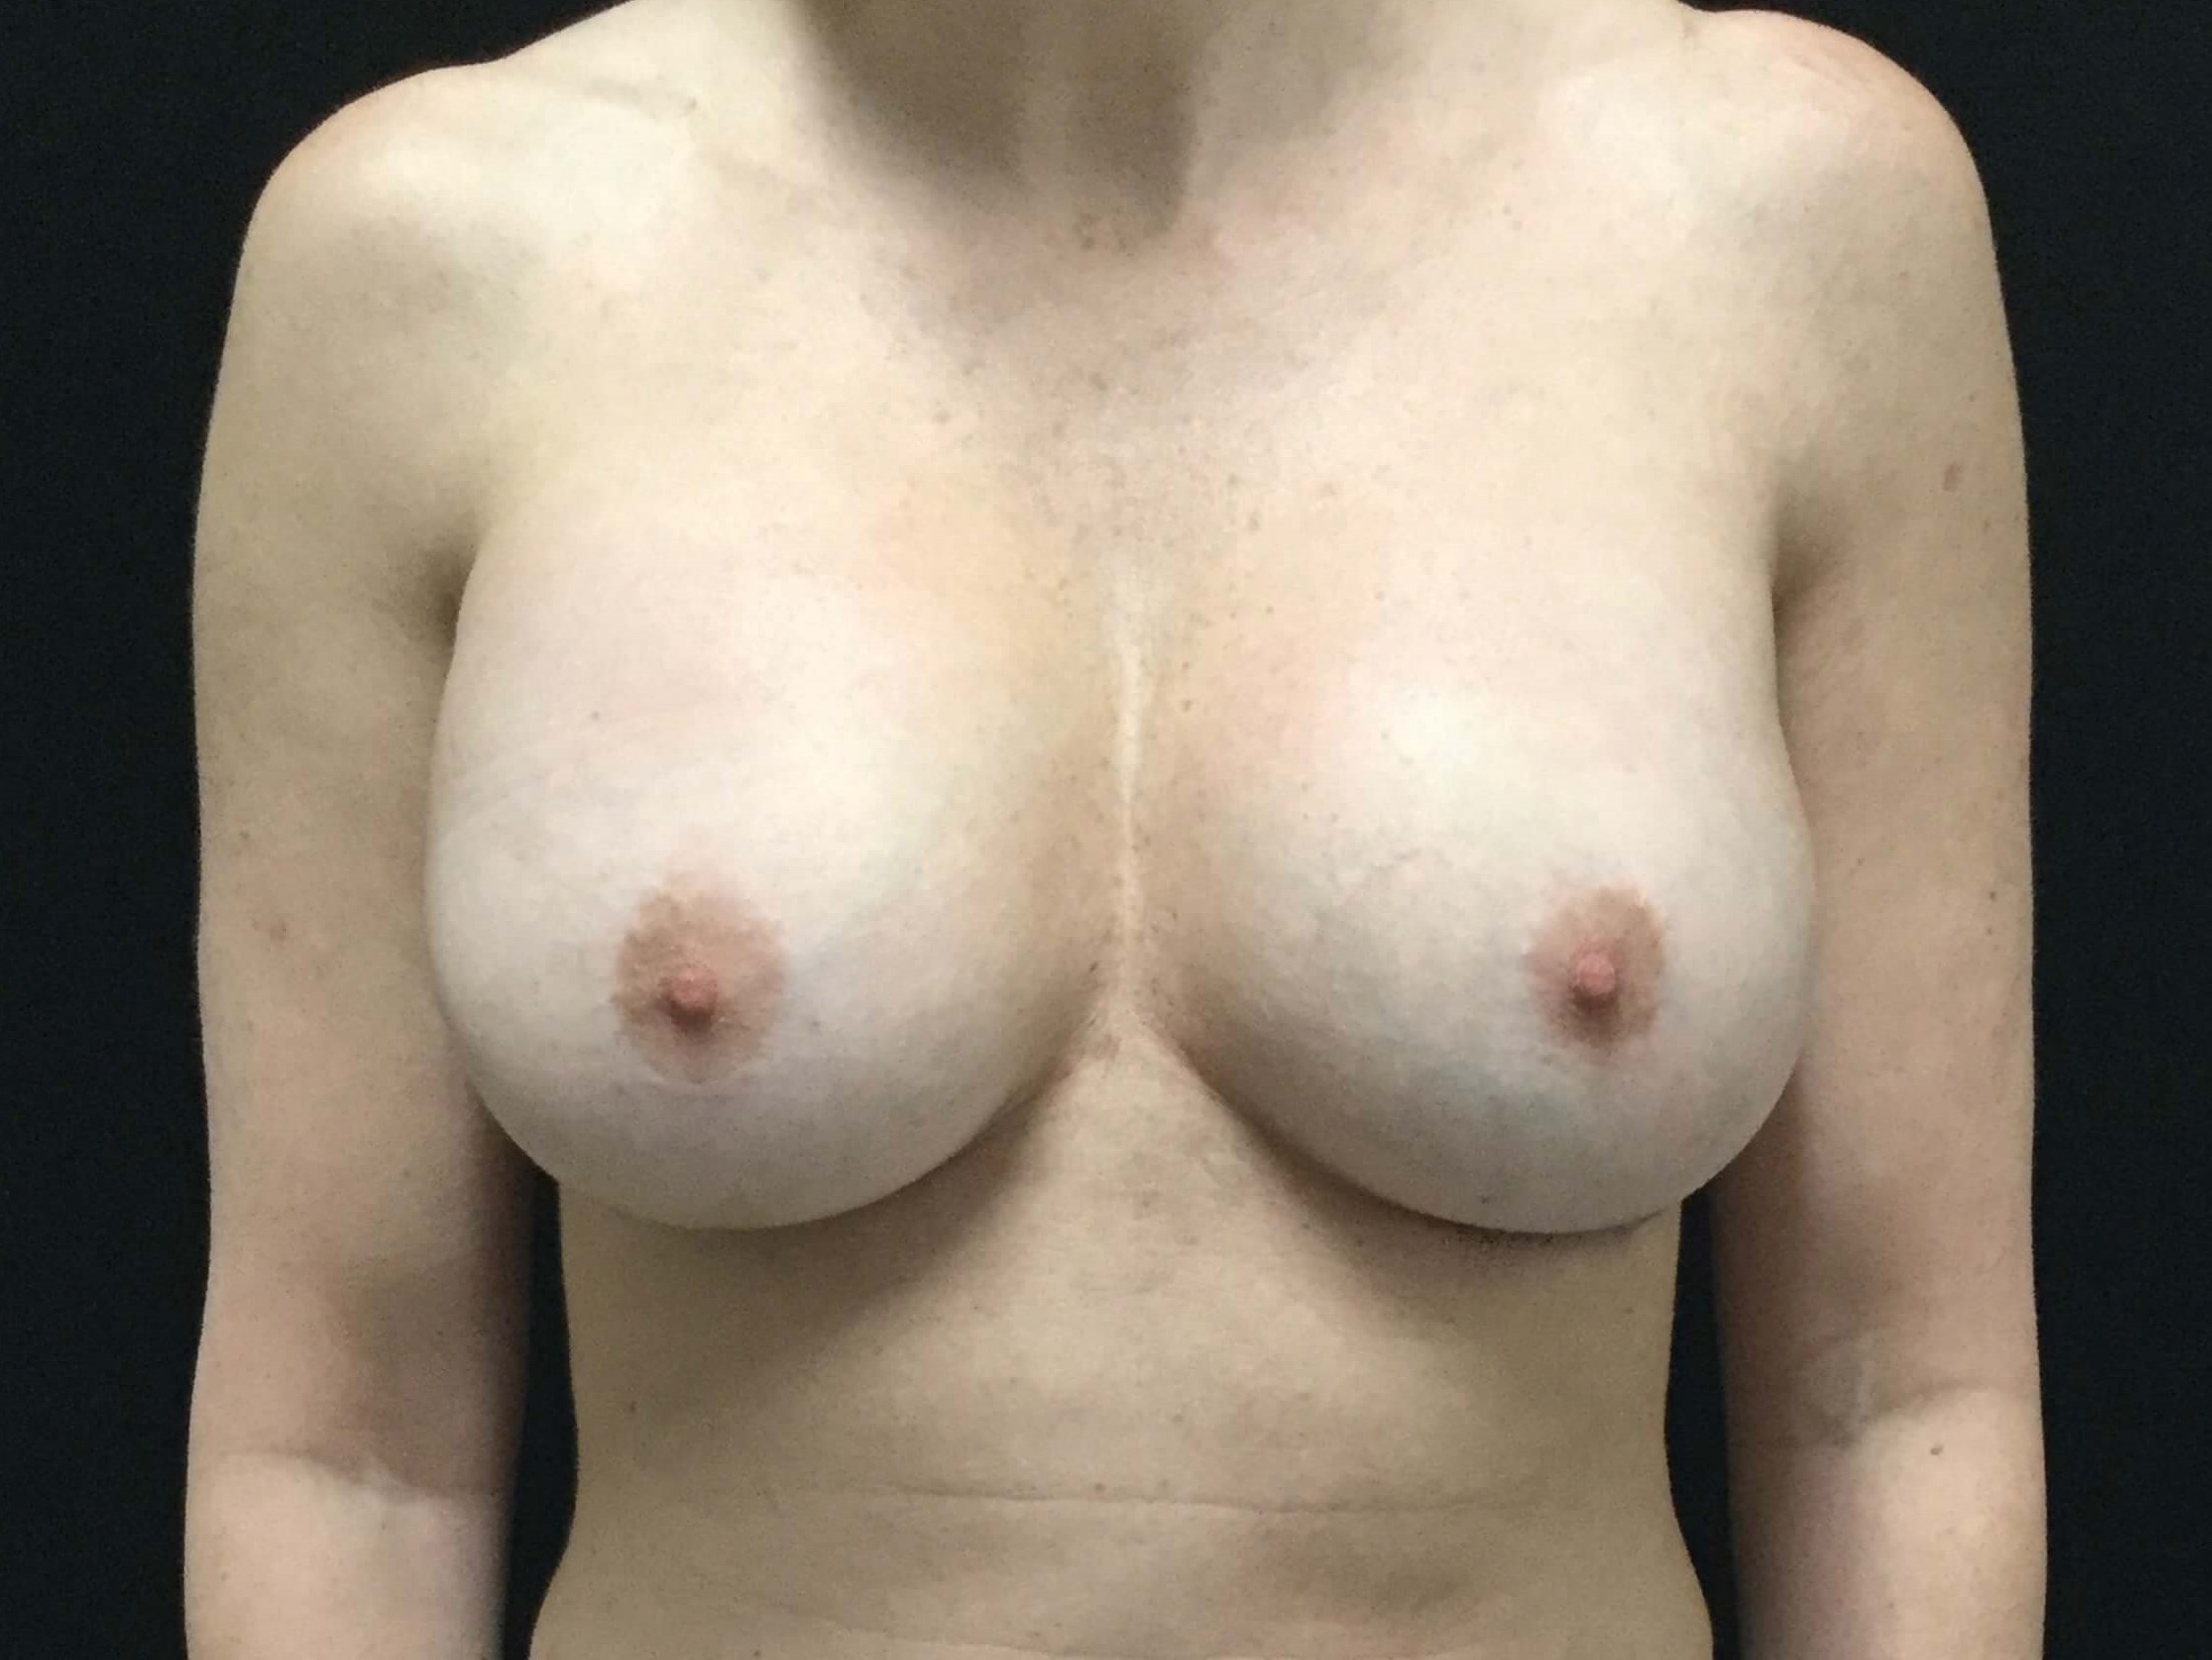 DALLAS, TEXAS WOMAN HAS BREAST IMPLANT REVISION SURGERY WITH SILICONE IMPLANTS